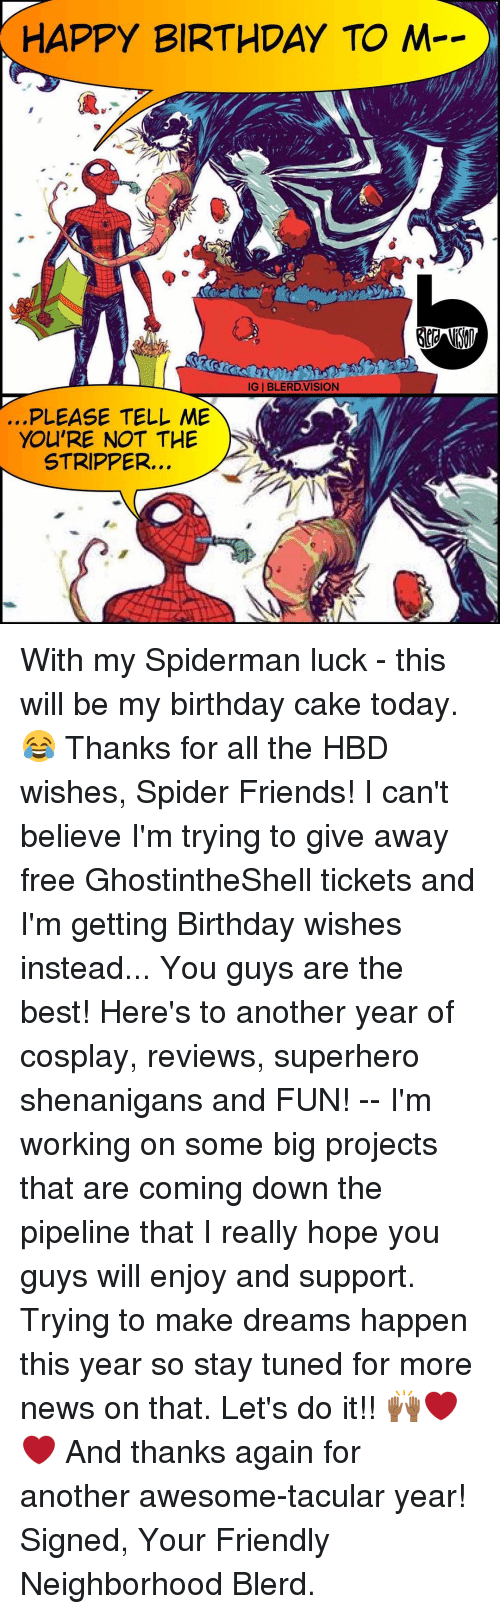 Memes, Strippers, and 🤖: HAPPY BIRTHDAY TO M  GIBLERDVISION  PLEASE TELL ME  YOU'RE NOT THE  STRIPPER. With my Spiderman luck - this will be my birthday cake today. 😂 Thanks for all the HBD wishes, Spider Friends! I can't believe I'm trying to give away free GhostintheShell tickets and I'm getting Birthday wishes instead... You guys are the best! Here's to another year of cosplay, reviews, superhero shenanigans and FUN! -- I'm working on some big projects that are coming down the pipeline that I really hope you guys will enjoy and support. Trying to make dreams happen this year so stay tuned for more news on that. Let's do it!! 🙌🏾❤️❤️ And thanks again for another awesome-tacular year! Signed, Your Friendly Neighborhood Blerd.